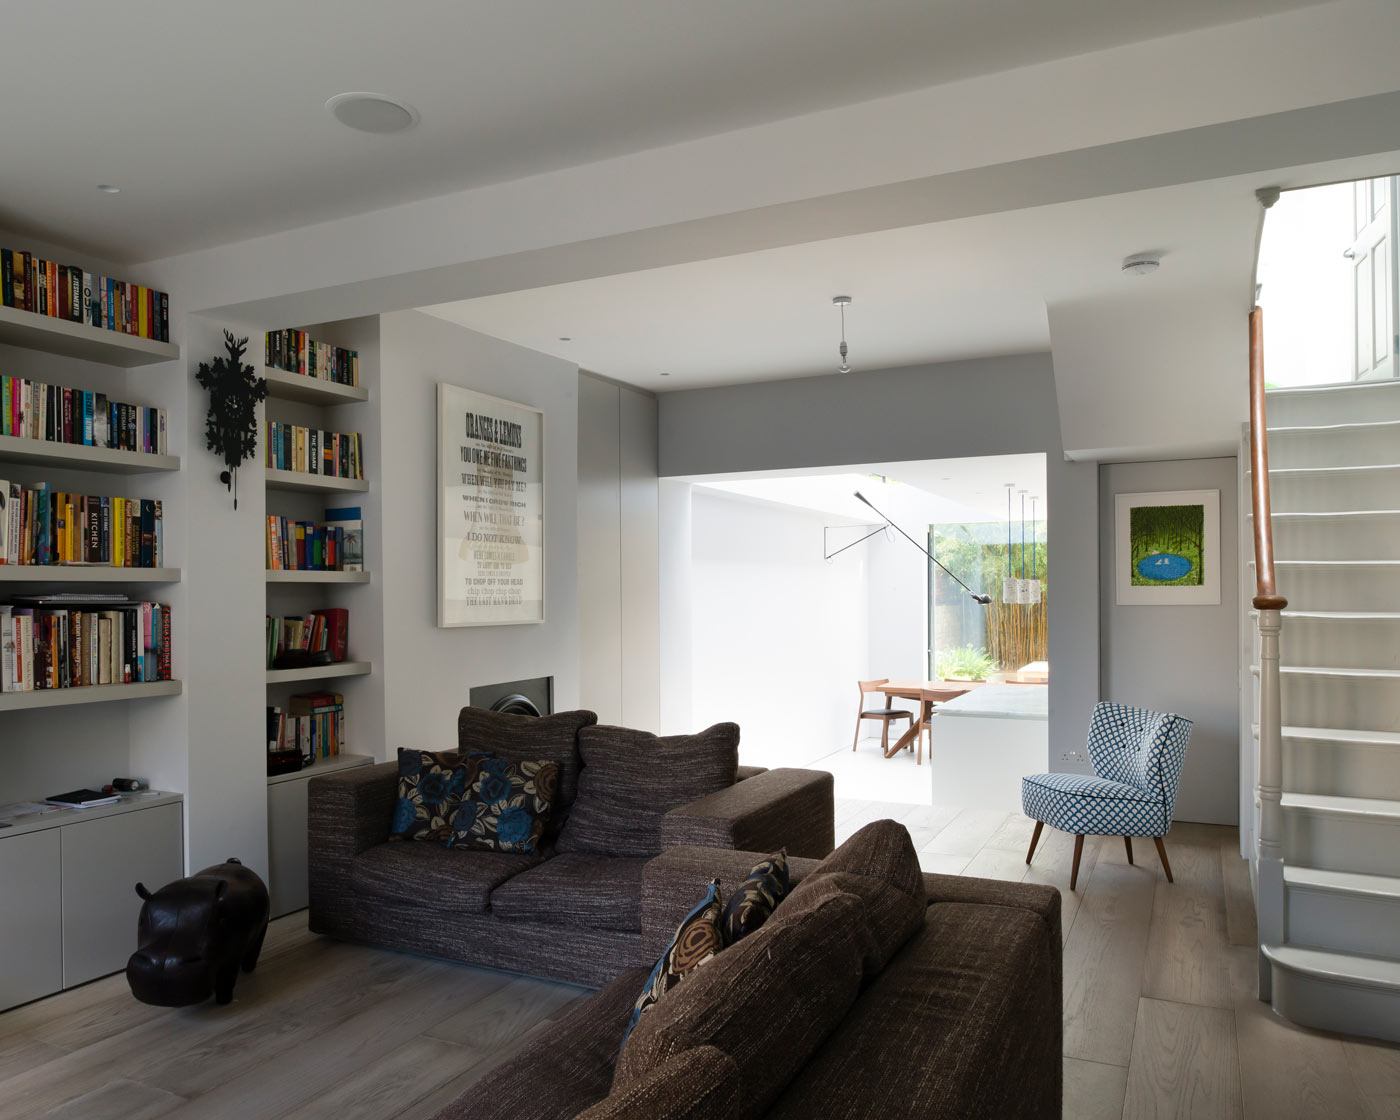 House Extension Ideas In London Architecture For London